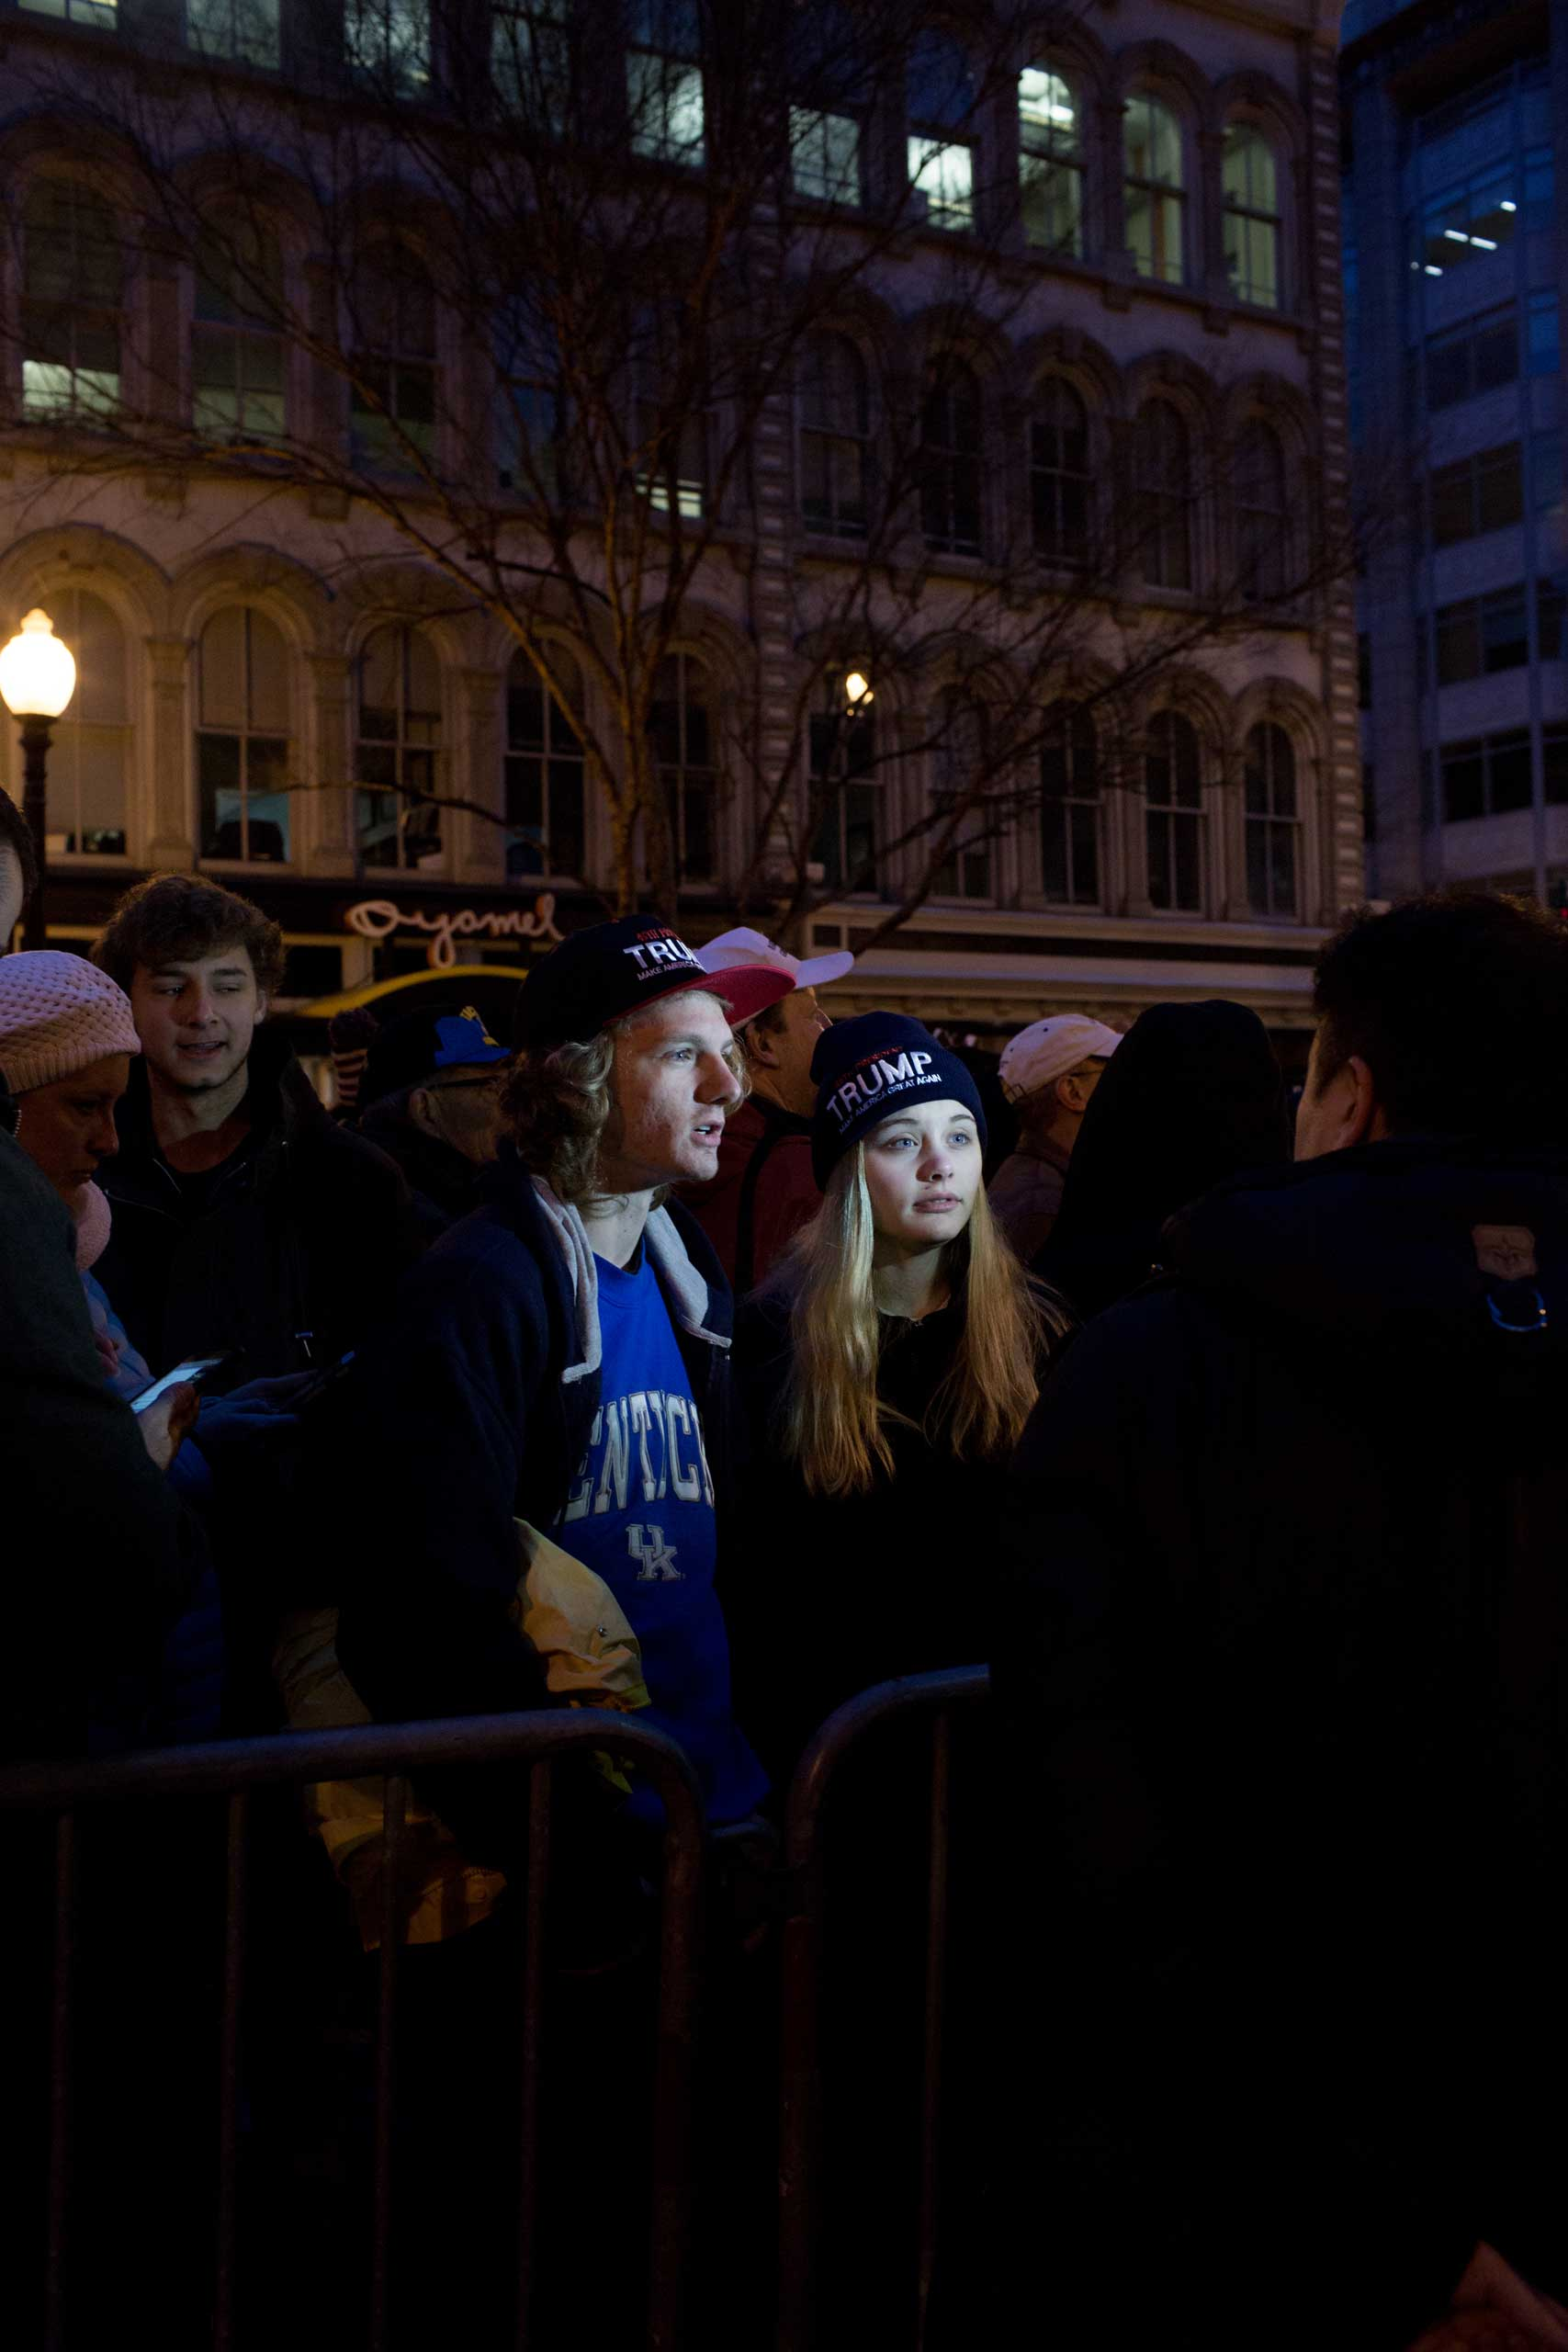 7:45 AM: A couple of Trump supporters give an interview as they wait in the security line to access the Navy Memorial. It's 7 AM and it quickly dawns on the protesters that both supporters and protesters of Trump's presidency will have to wait in the same security lines. It's freezing cold and sellers hawk hand warmers and ponchos. We wait but the line doesn't move, so both groups answer requests for interviews, accusing the other side of being stupid within ear shot of each other.                                                              I marvel that there's no major conflicts between the various groups.